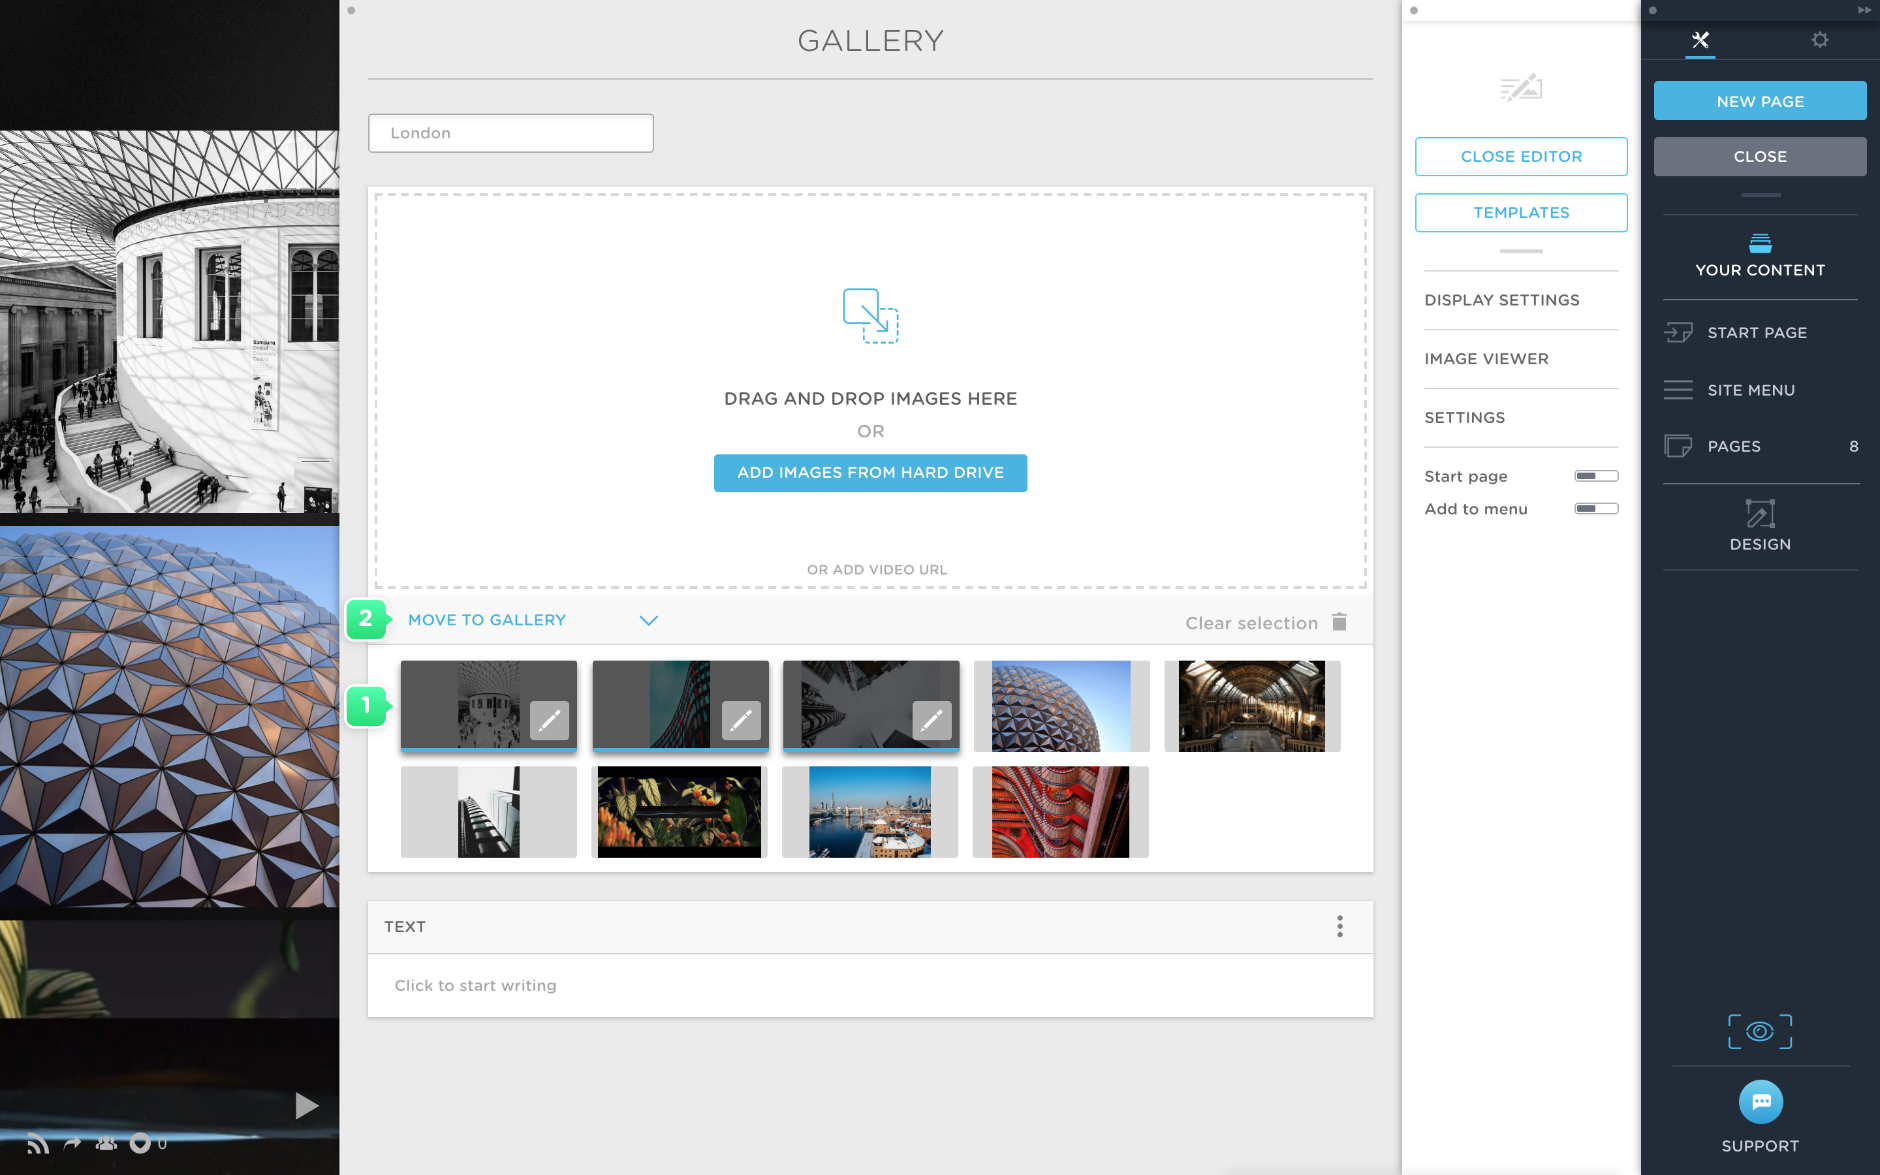 Move images to another gallery in Portfoliobox